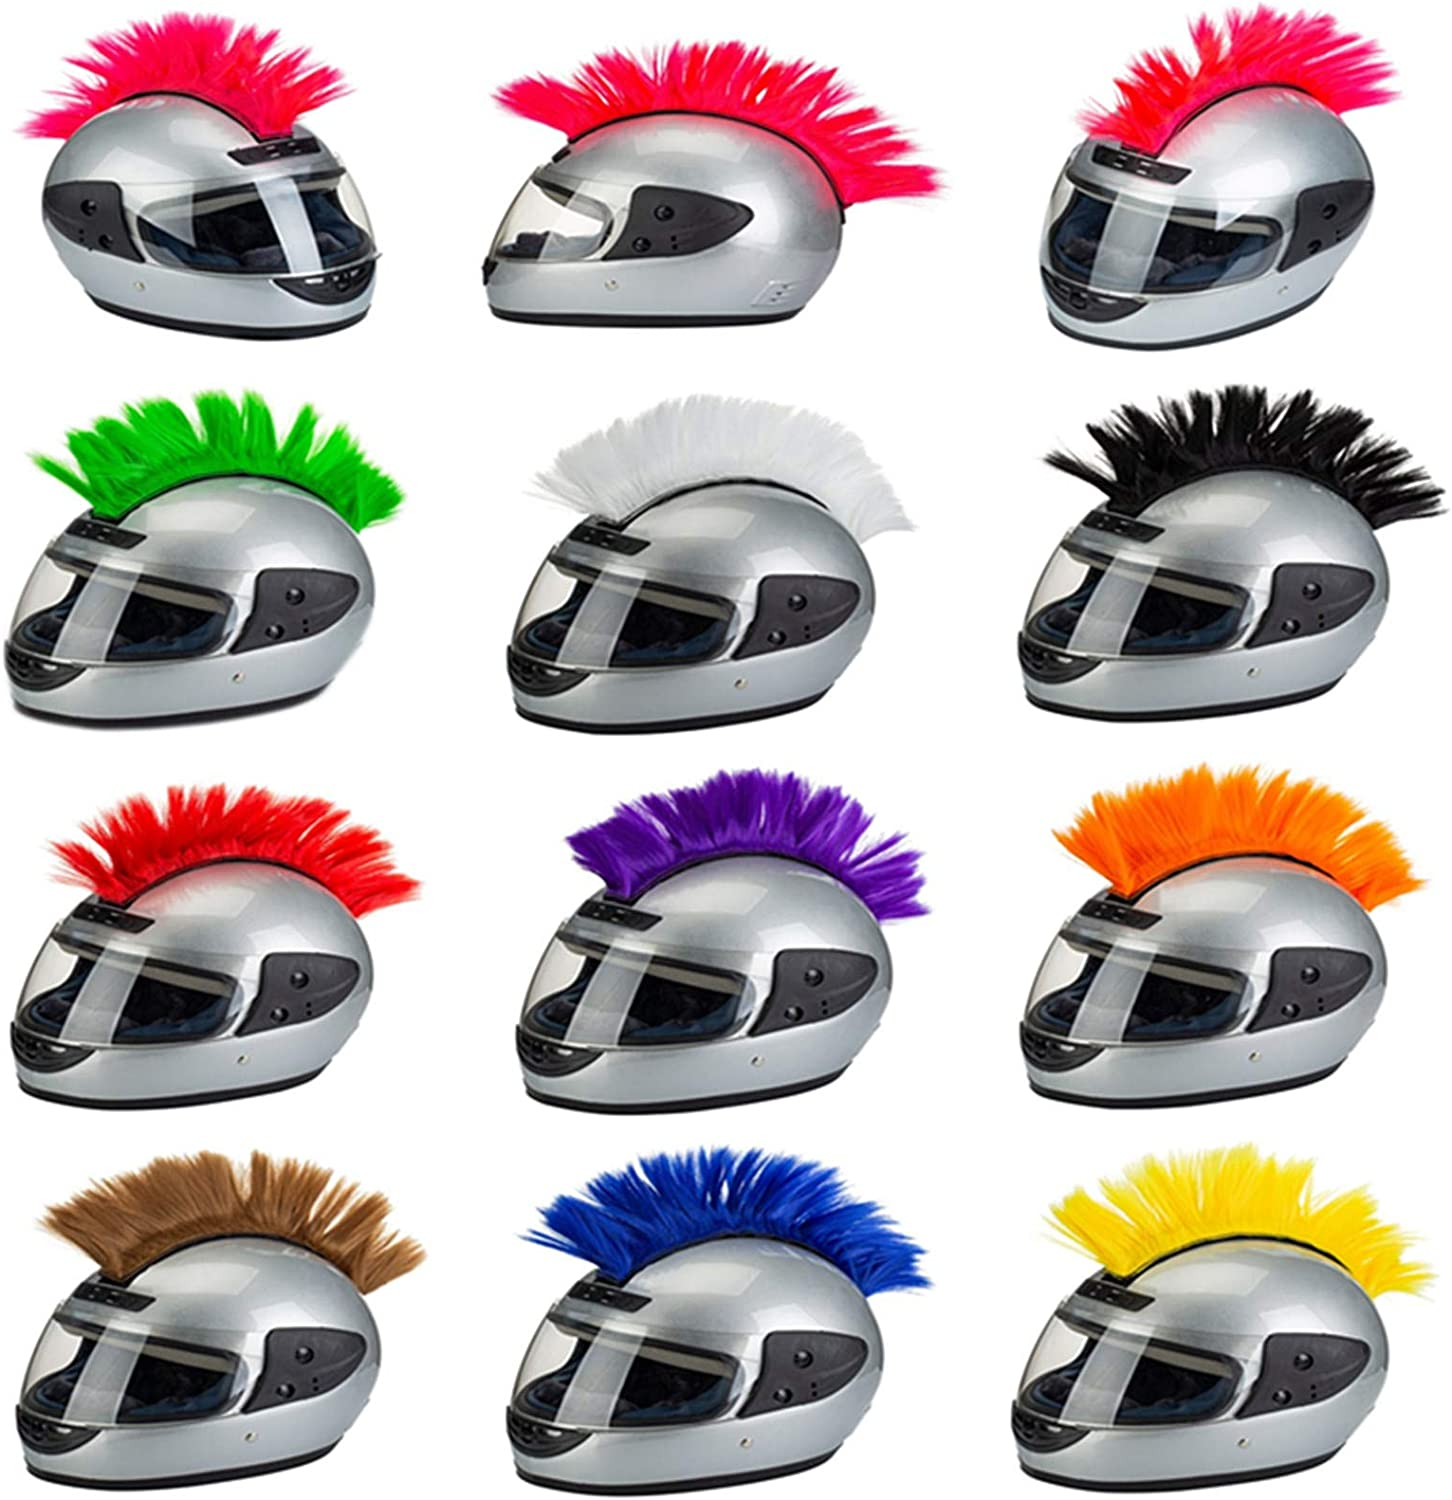 PAXLamb Helmet Mohawk Wigs Skinhead Wig Hair Patches Hairpiece for Bicycle Motorcycle Cycling Scooters Polo Ski Snowboard Cosplay Costume